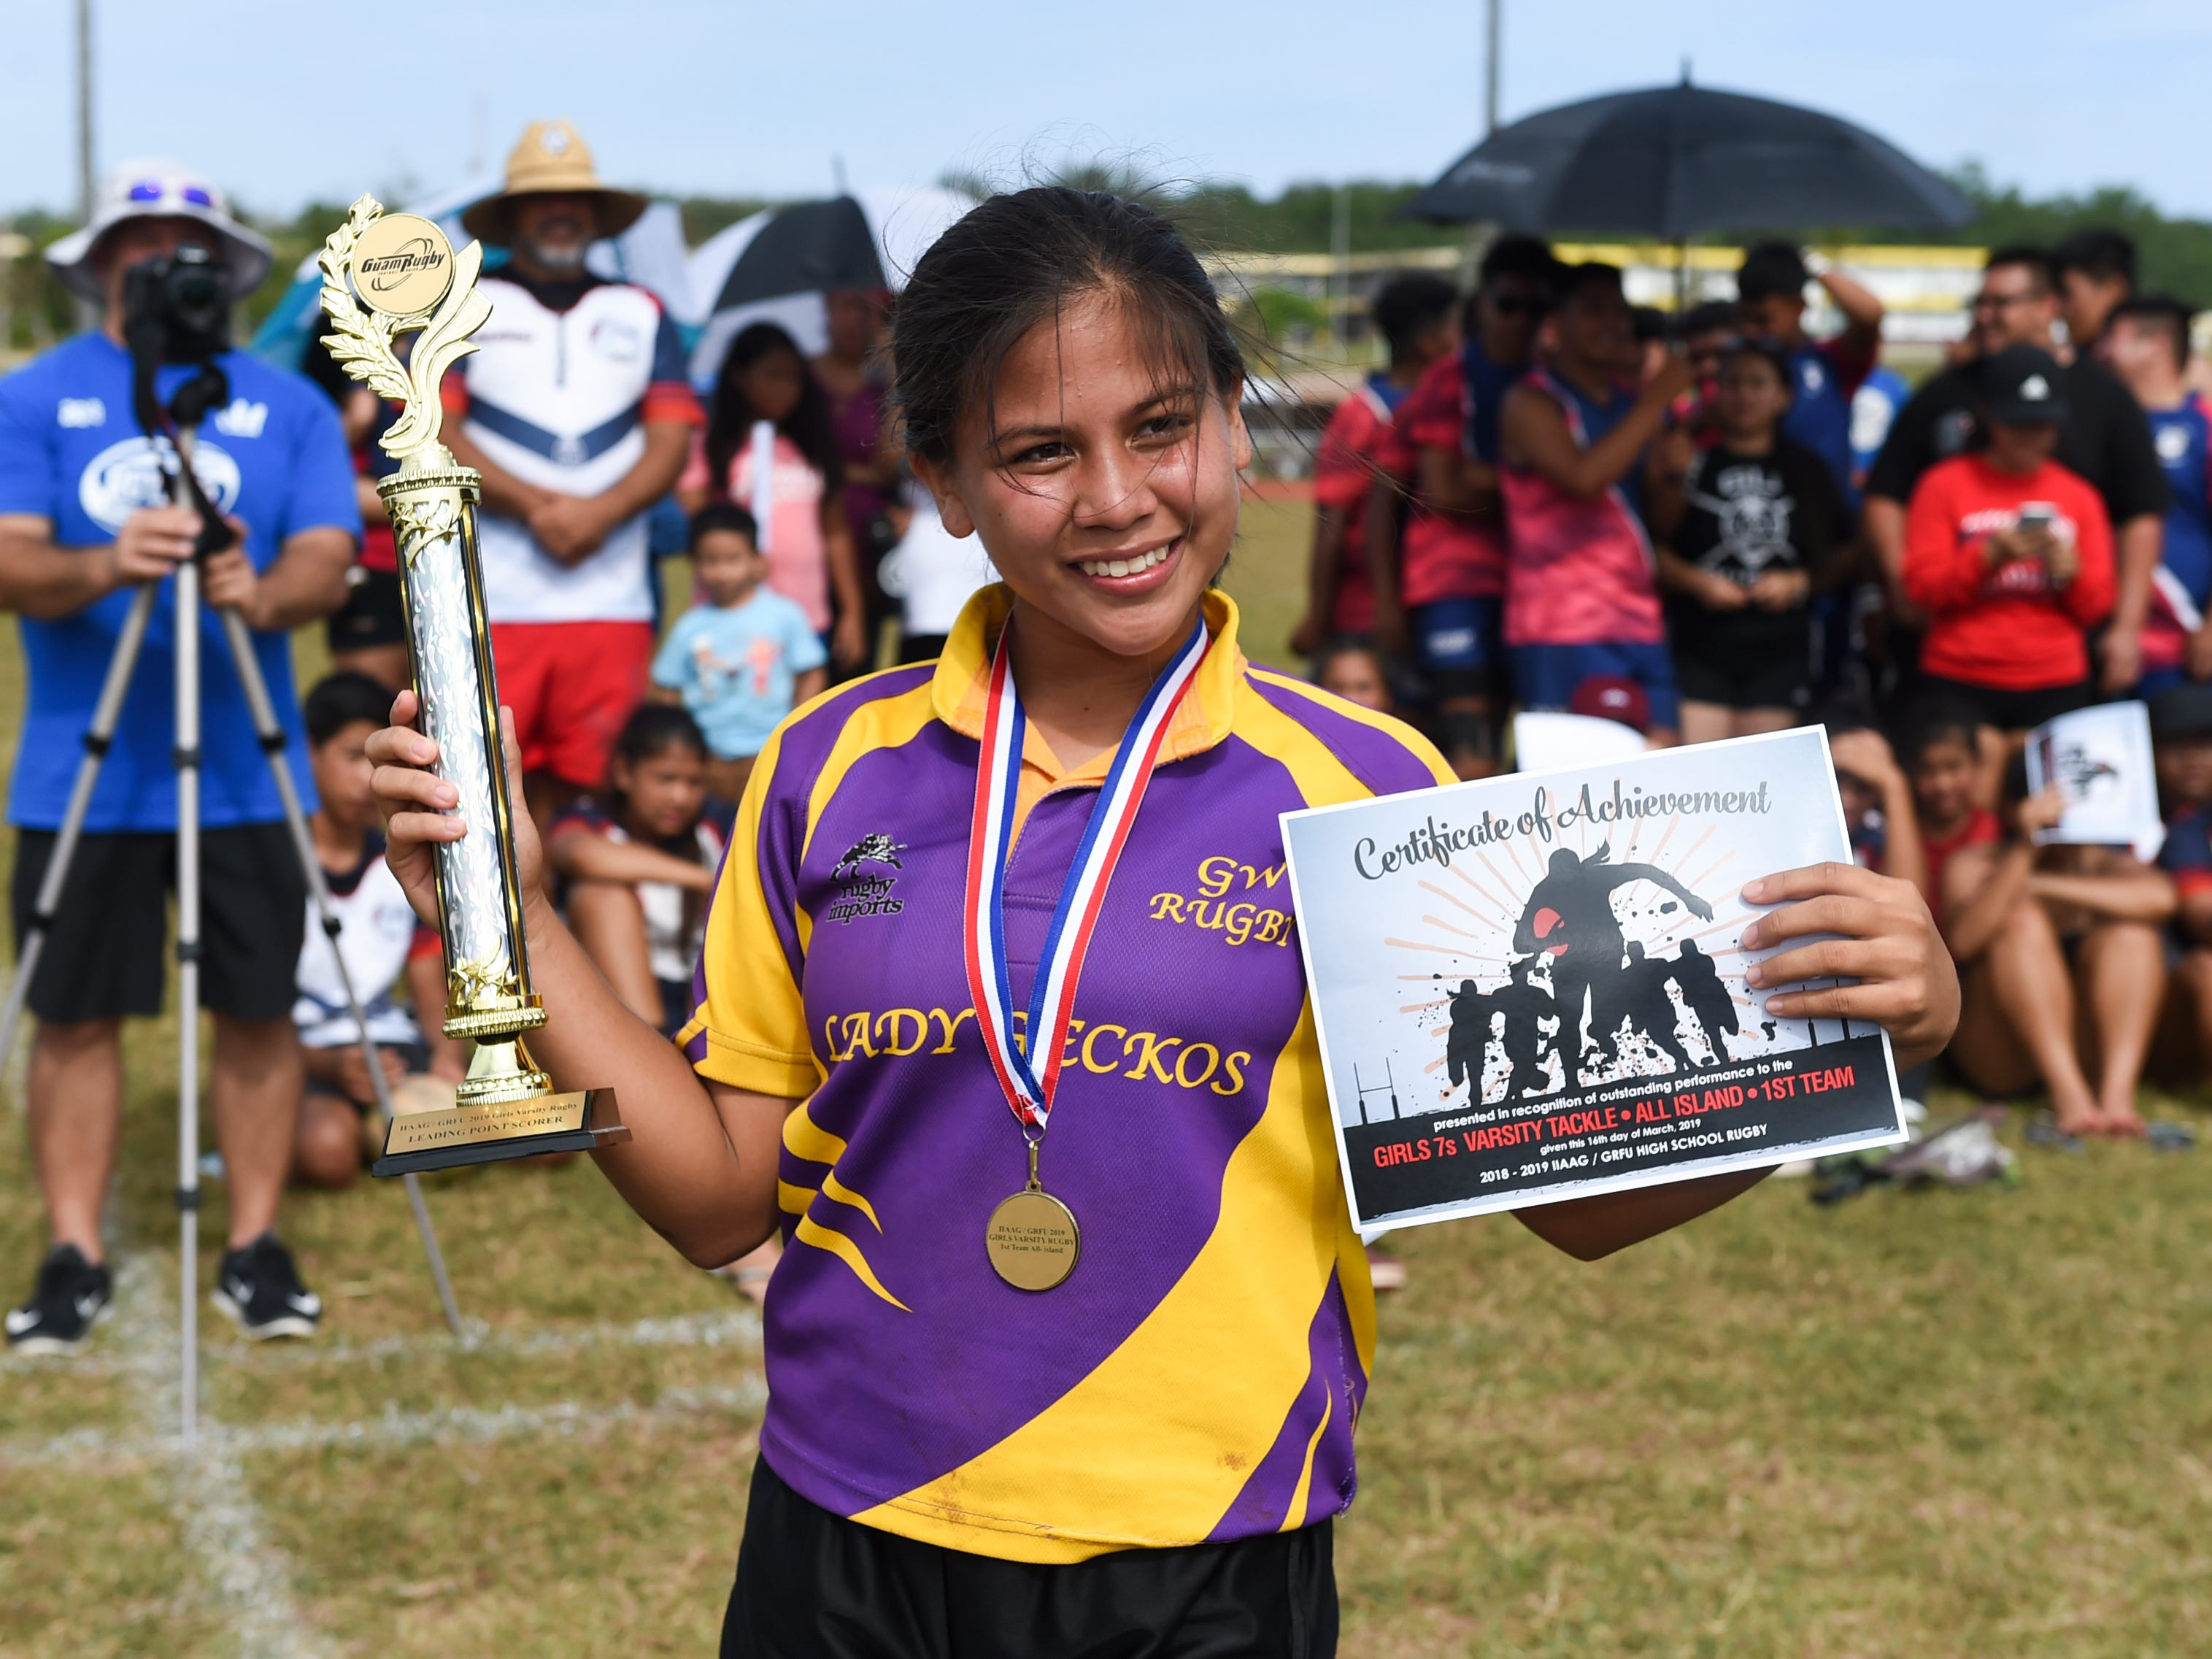 George Washington player Aveah Garrido receives the 2018-2019 IIAAG/GRFU Girls Rugby Top Point Scorer award with 158 points, at the George Washington High School Field, March 16, 2019.